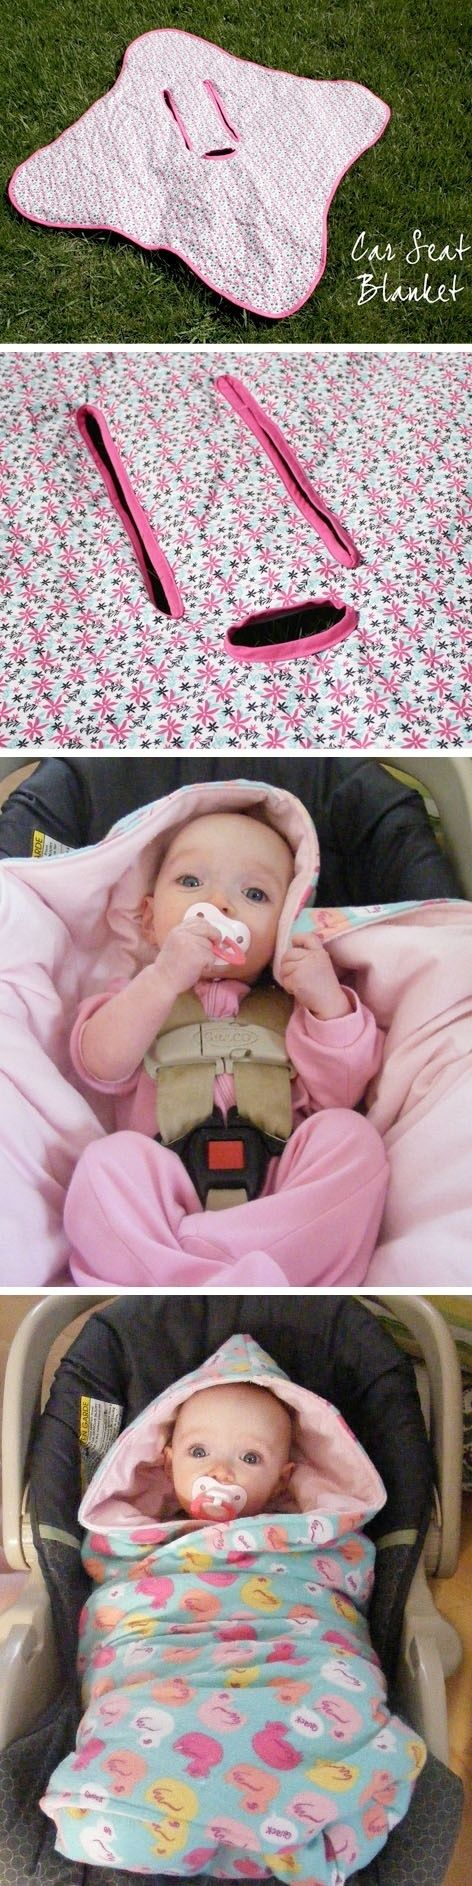 best baby girl images on pinterest little girl outfits kid